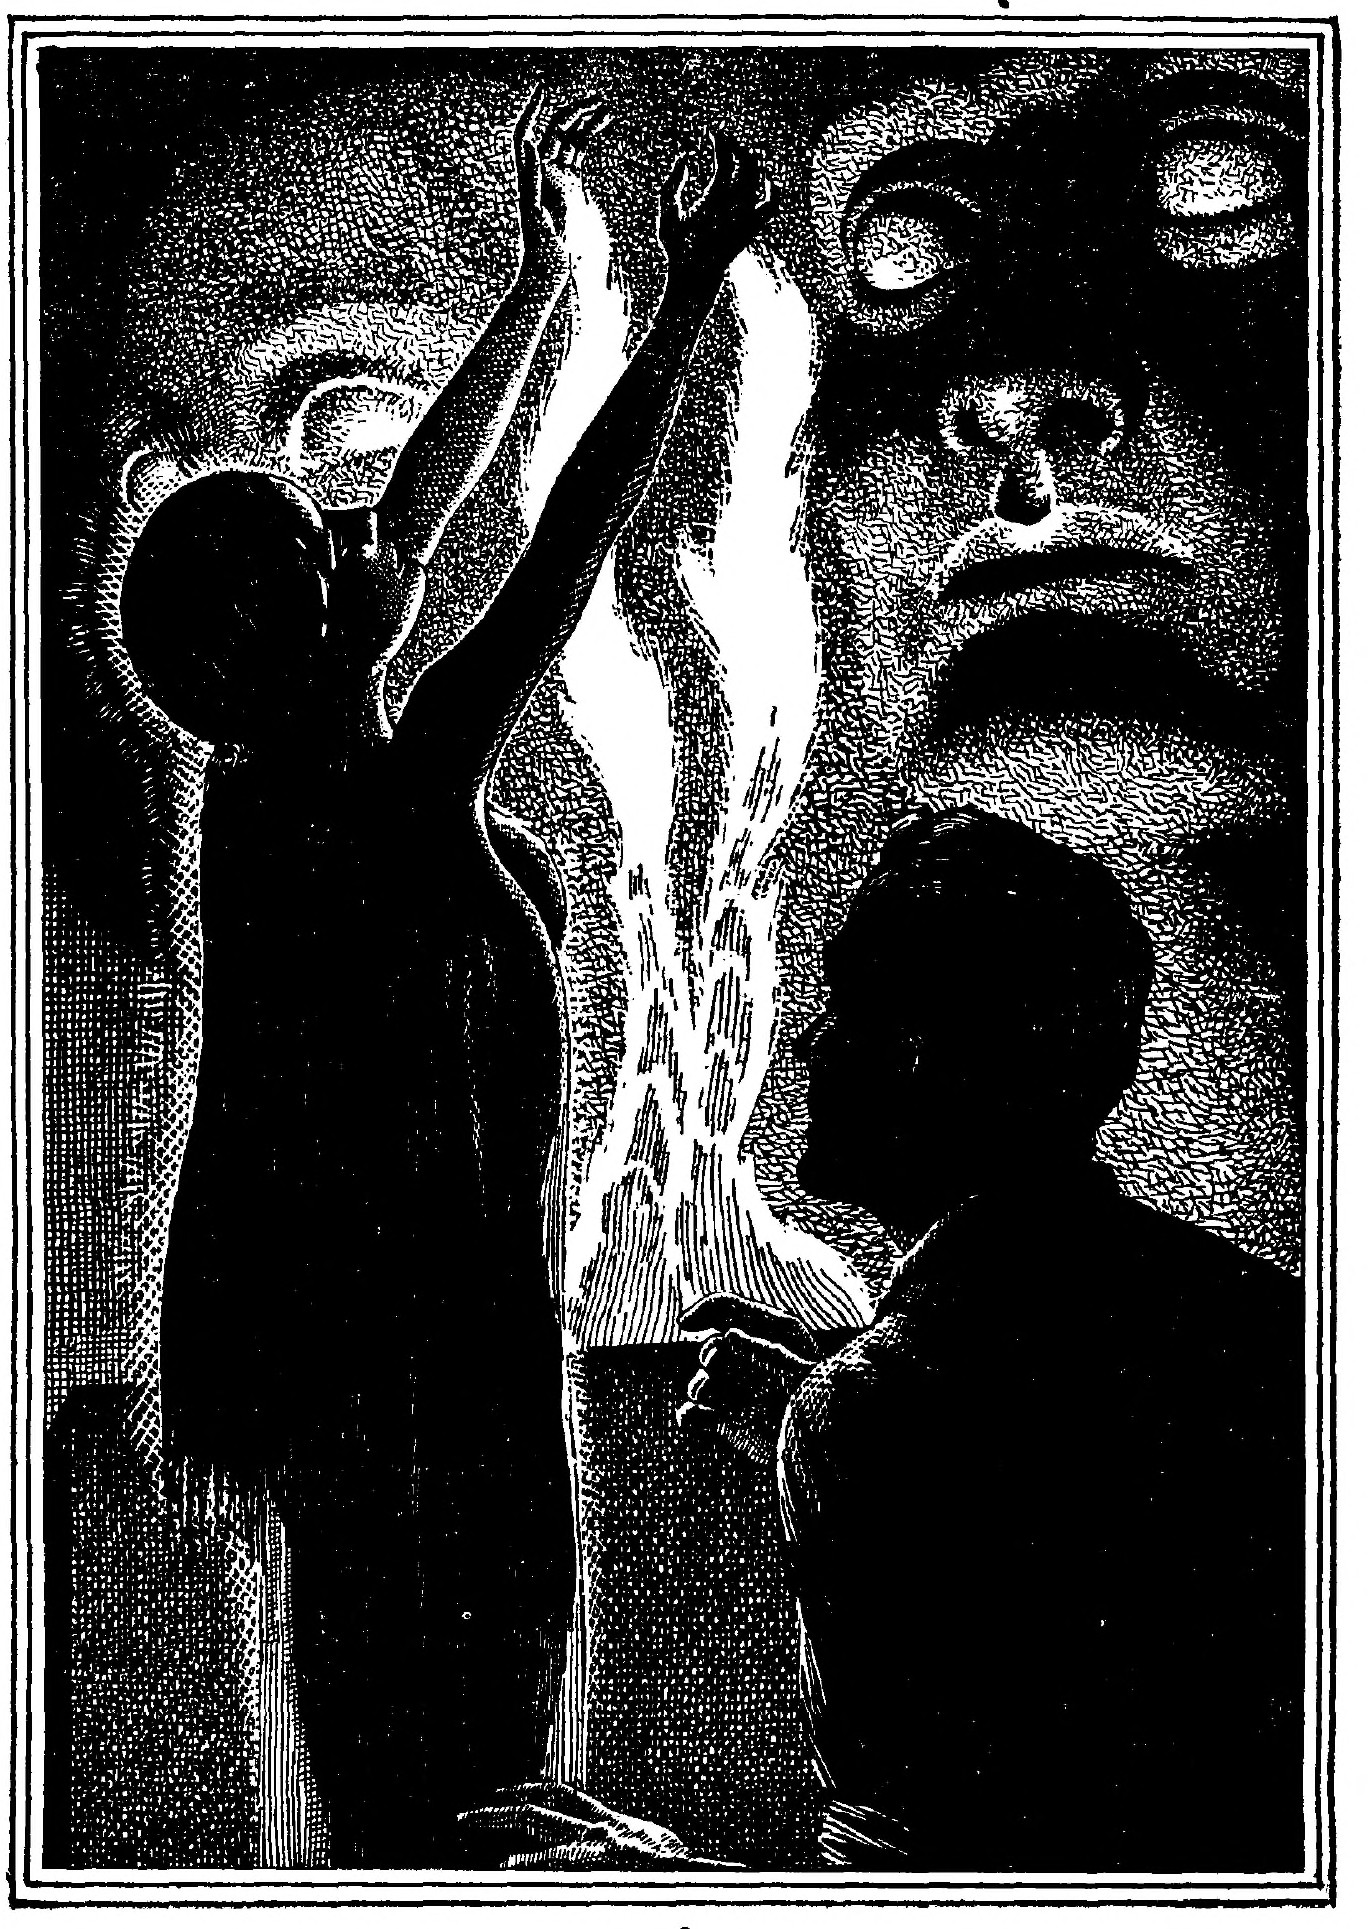 Priestess ritual illustrated by Lawrence Stern Stevens.